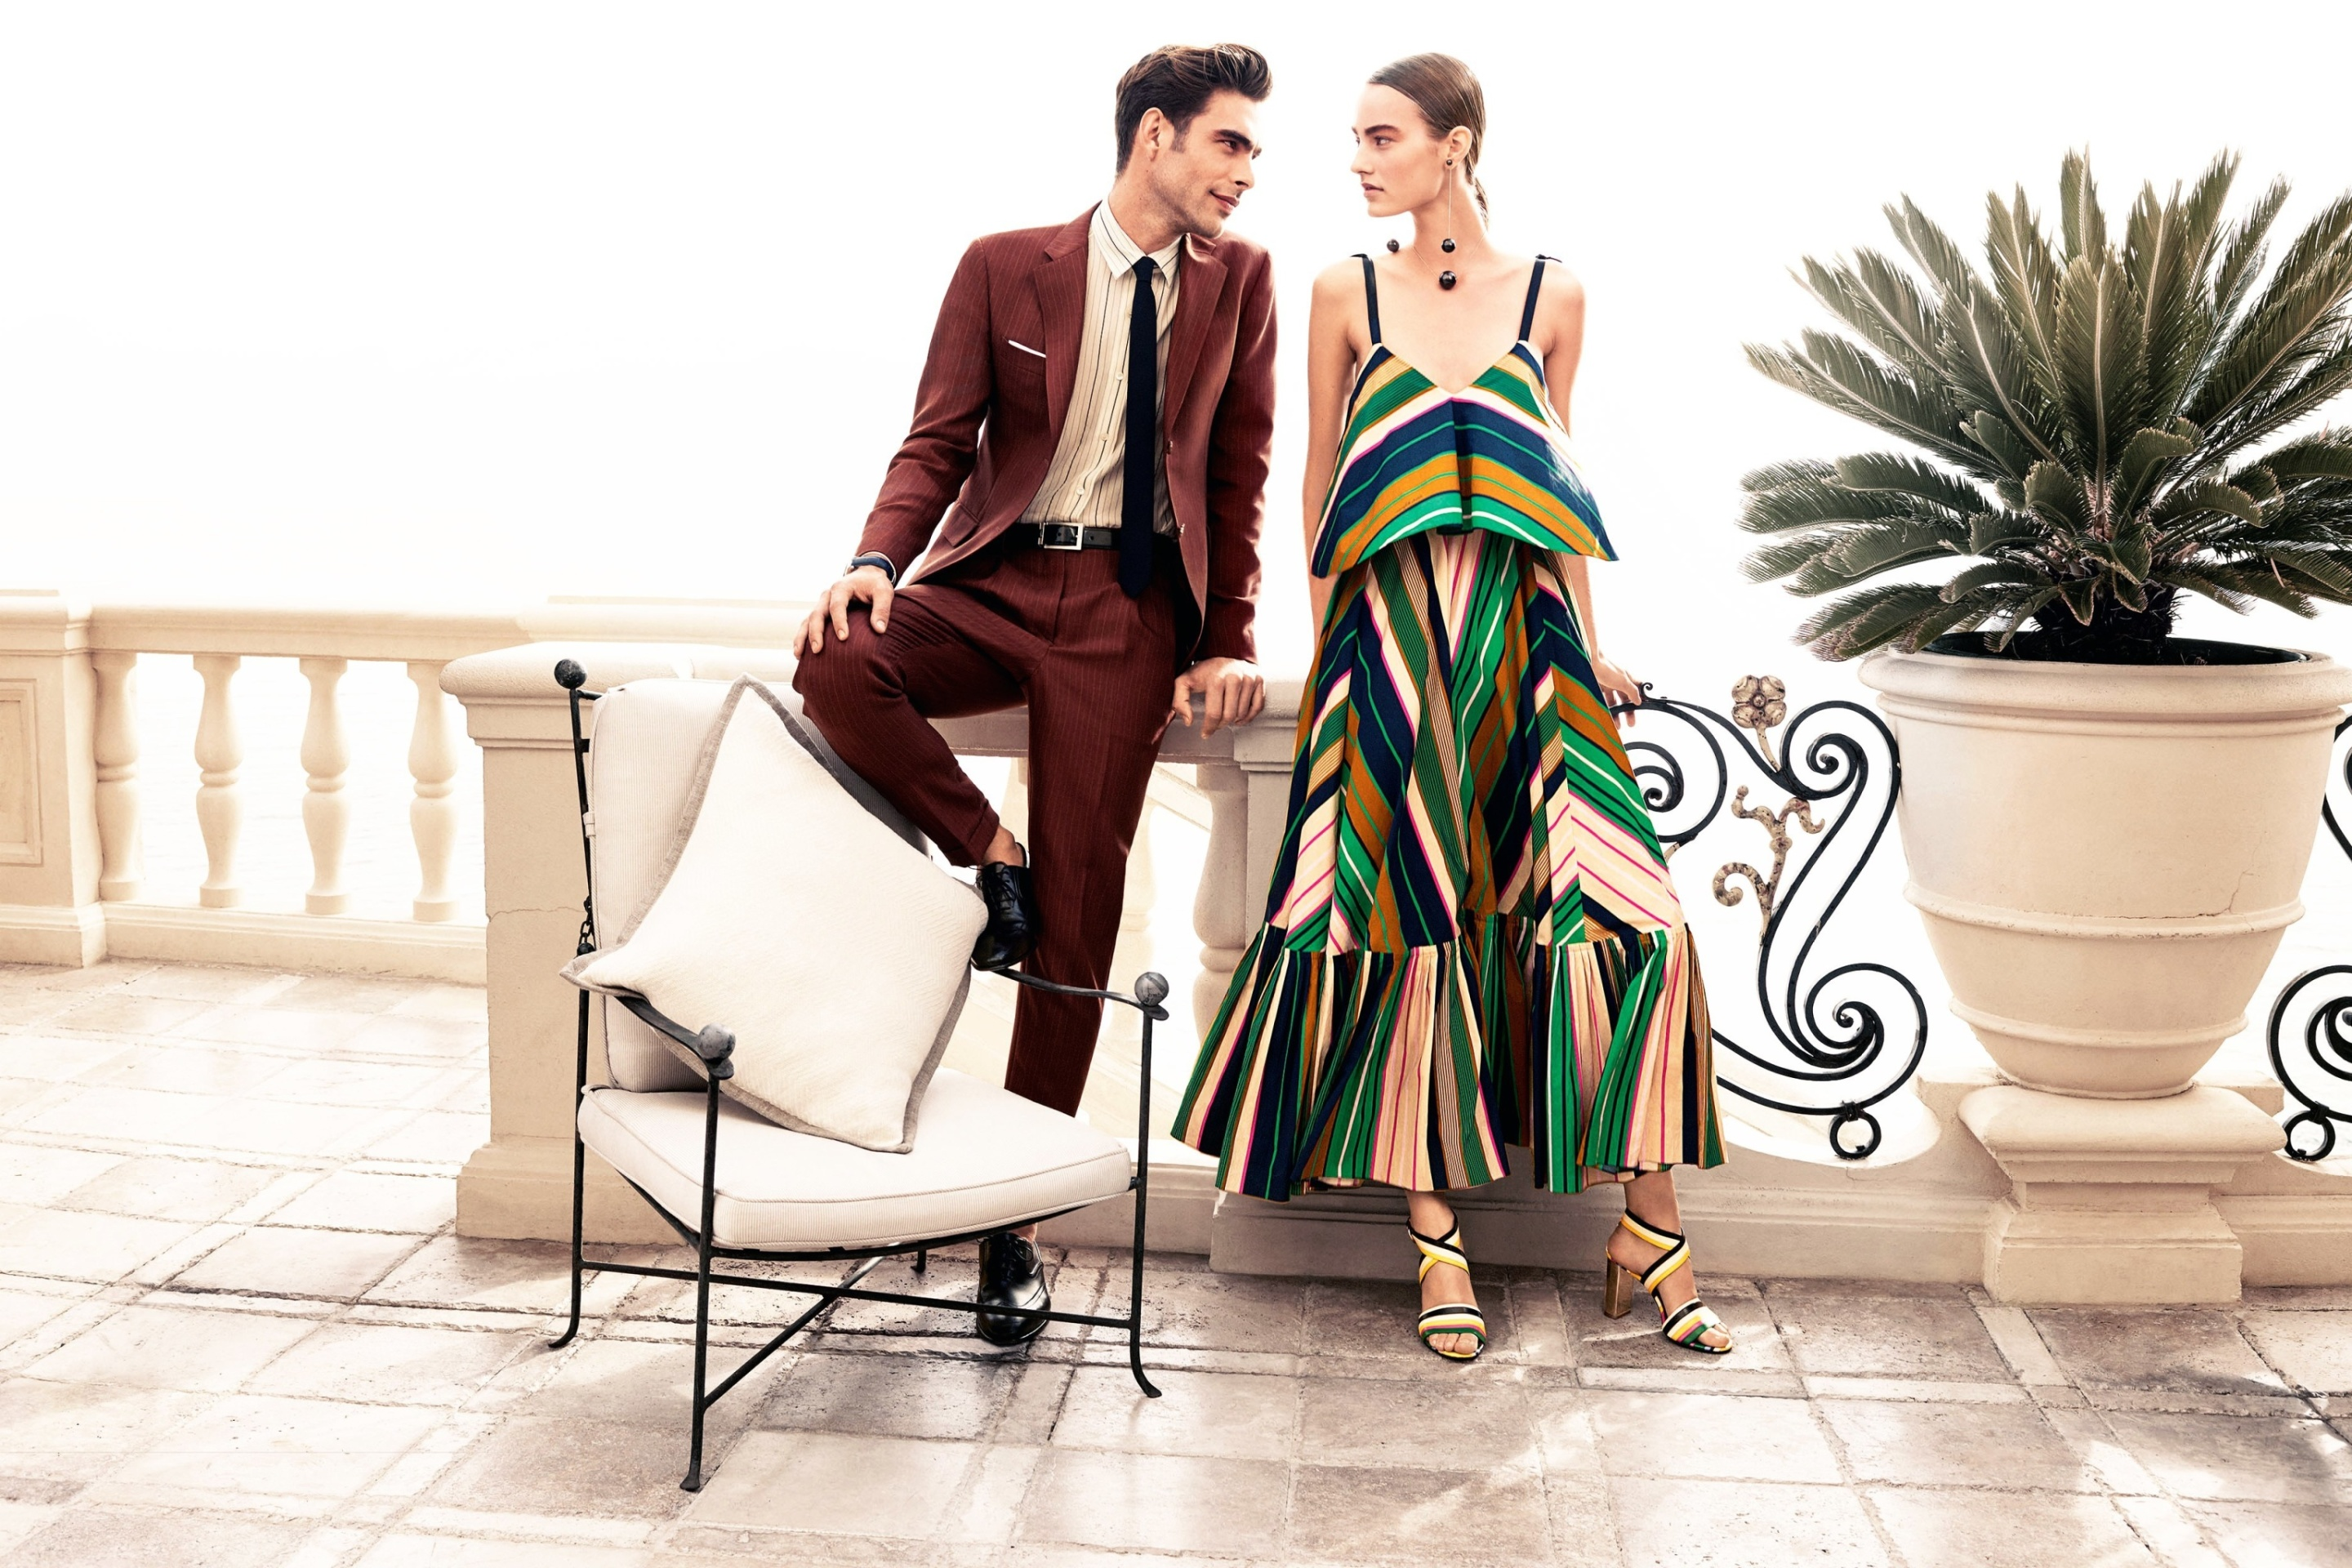 Das Salvatore Ferragamo Summer Fashion Wallpaper 2880x1920